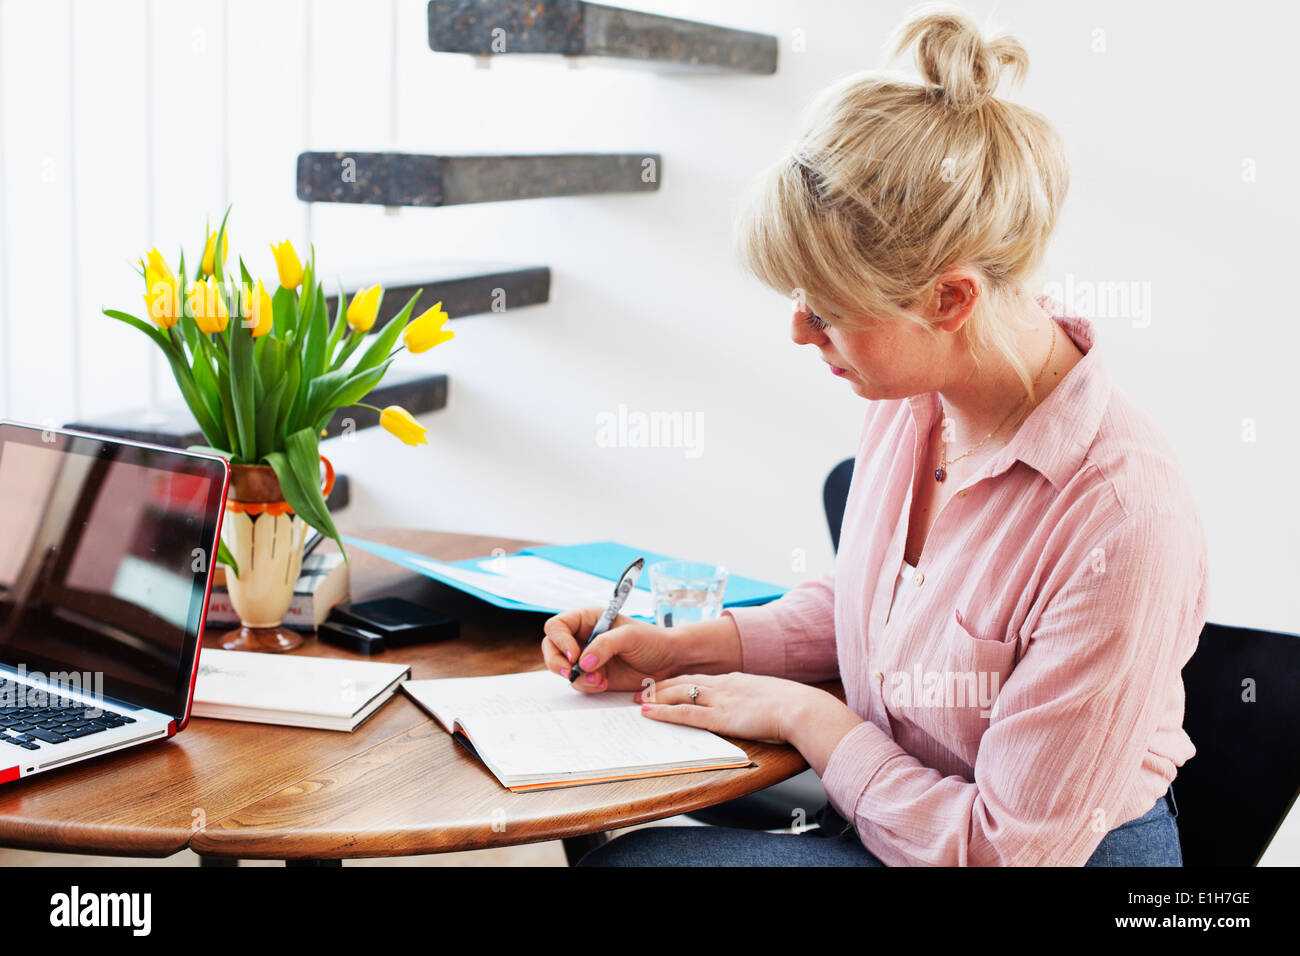 Young woman sitting at table writing - Stock Image